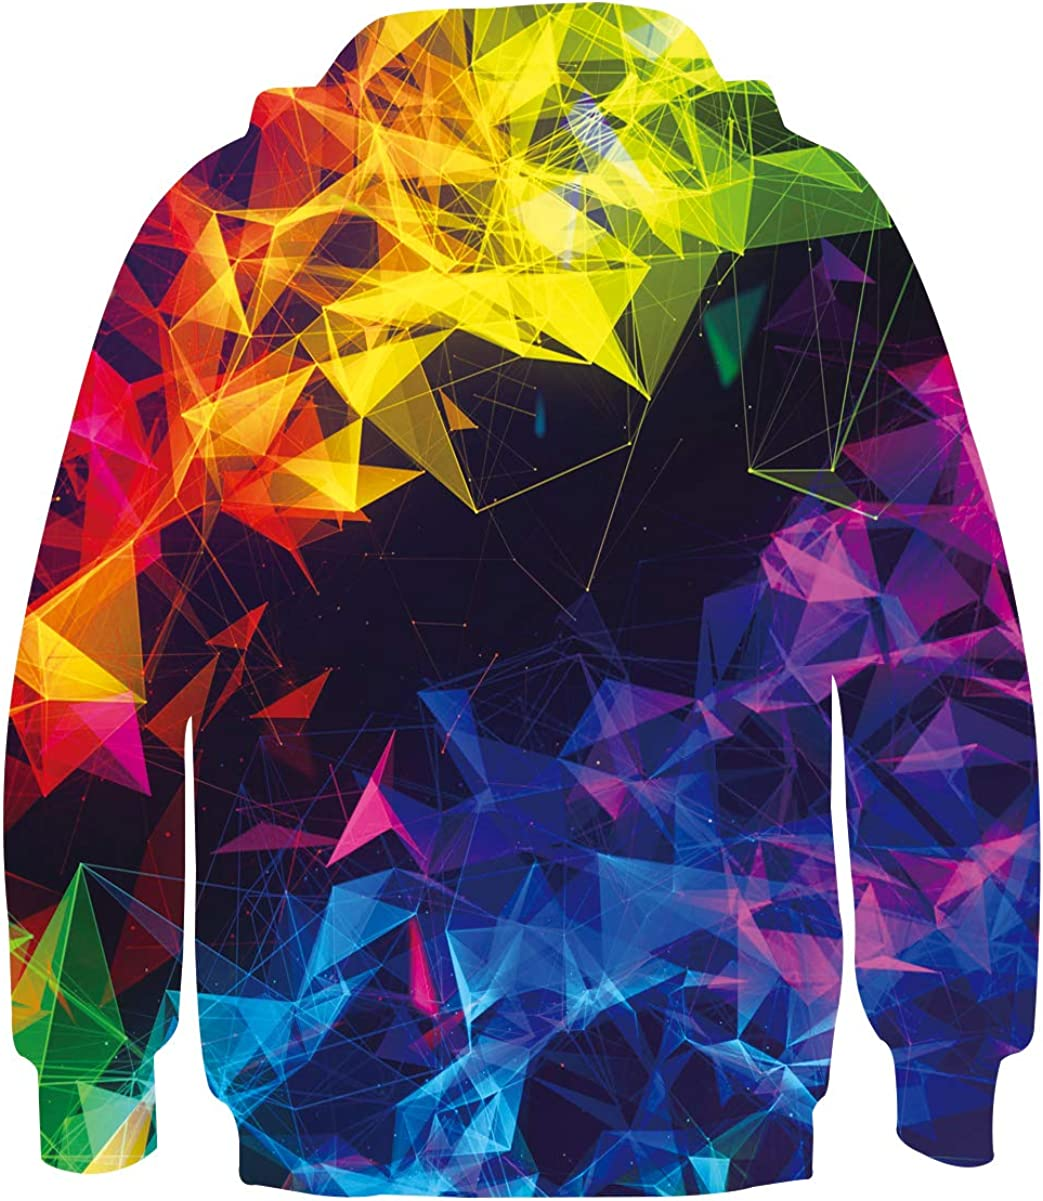 UNICOMIDEA Boys Girls 3D Print Pullover Hoodie Kids Hooded Sweatshirts with Pocket for 6-16T